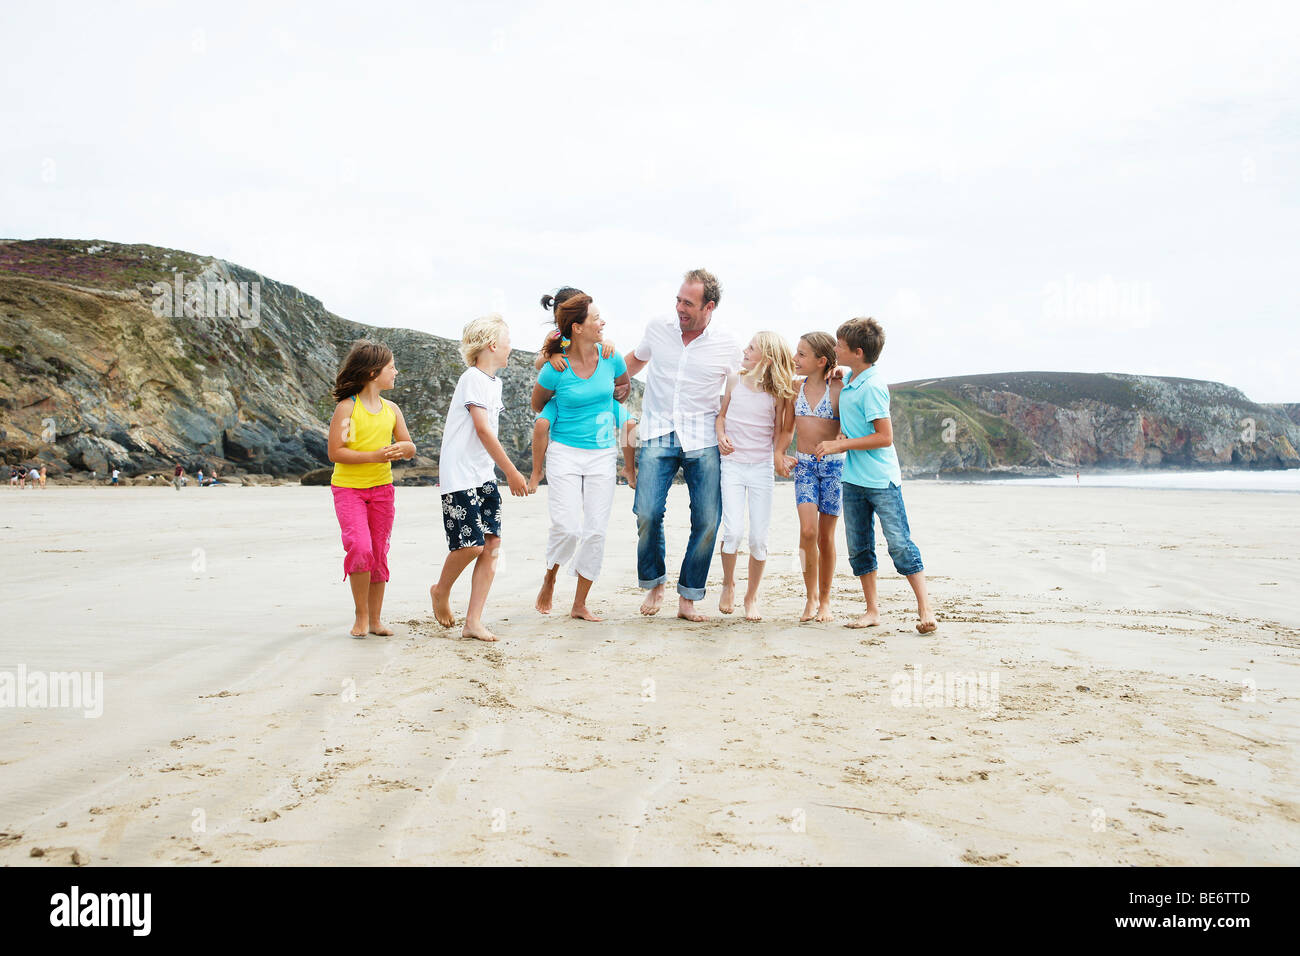 Woman, man, four girls and two boys walking along the beach, hand in hand, laughing, Bretagne, France, Europe - Stock Image